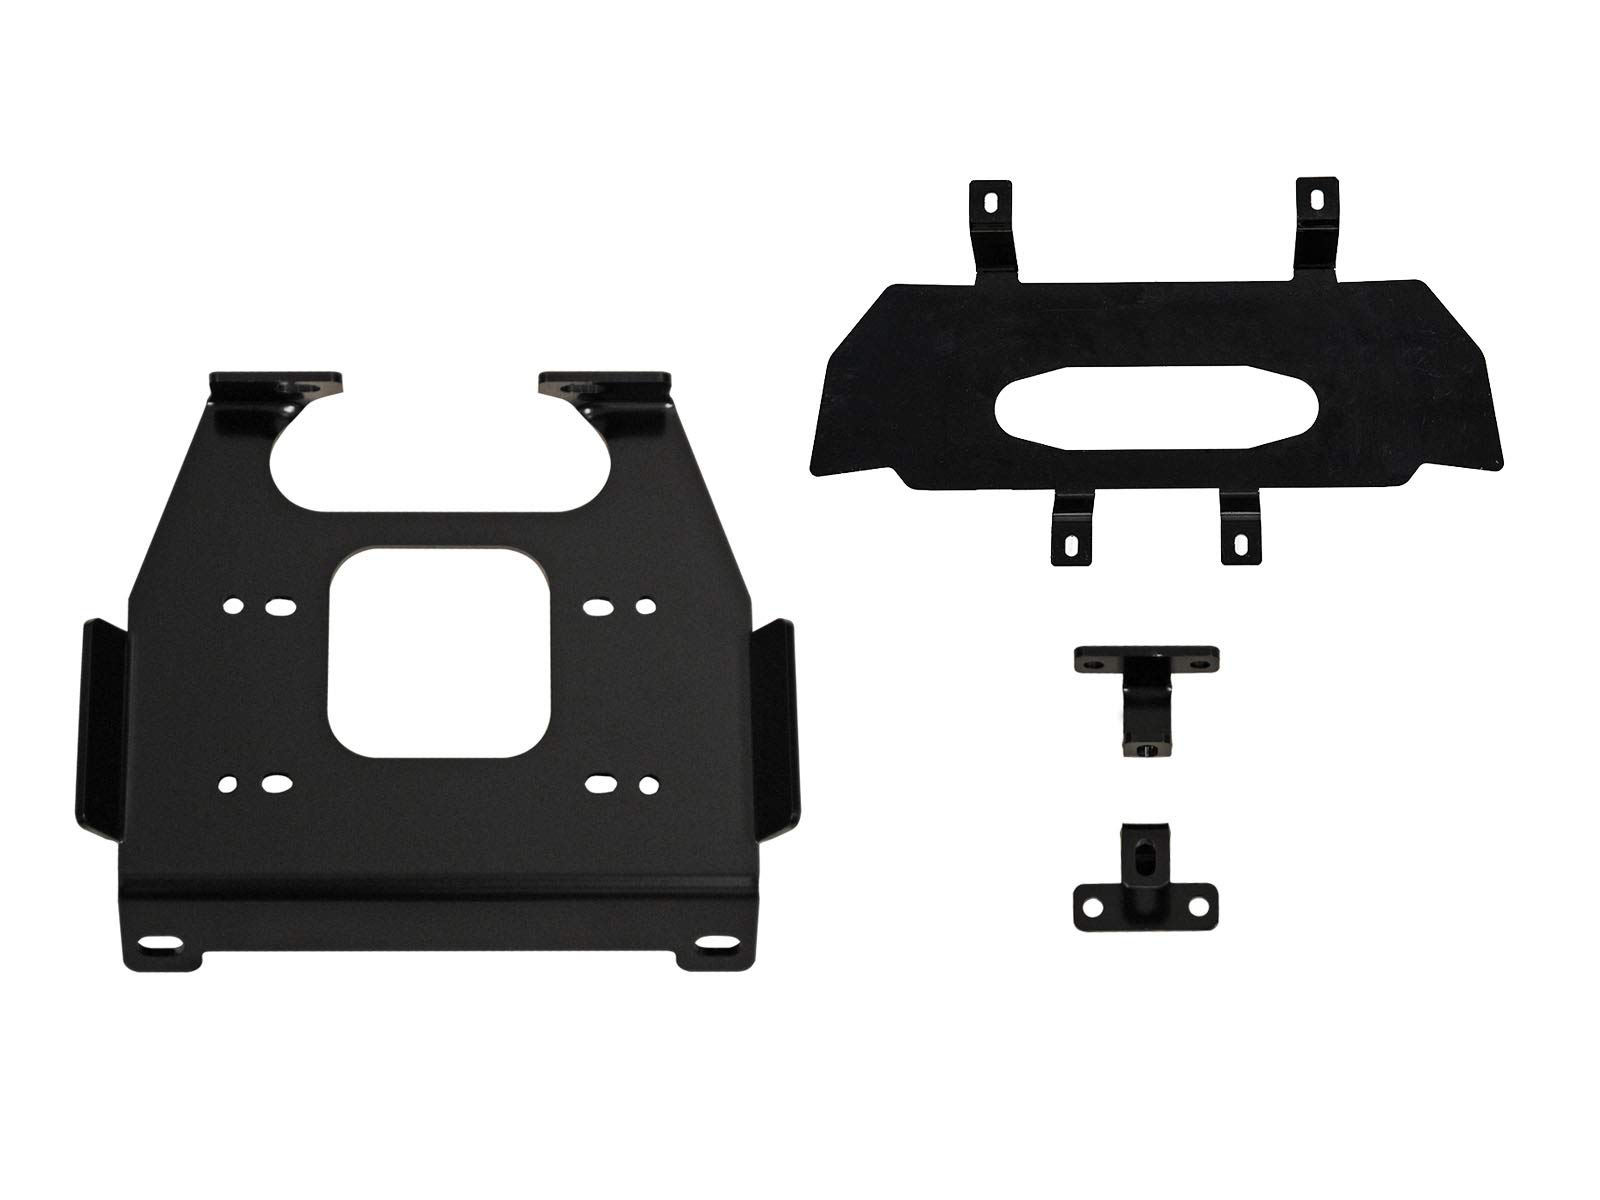 SuperATV Heavy Duty Winch Mounting Plate for Polaris RZR XP 1000/4 1000 (2019+) - Dual Mounting Bolt Patterns